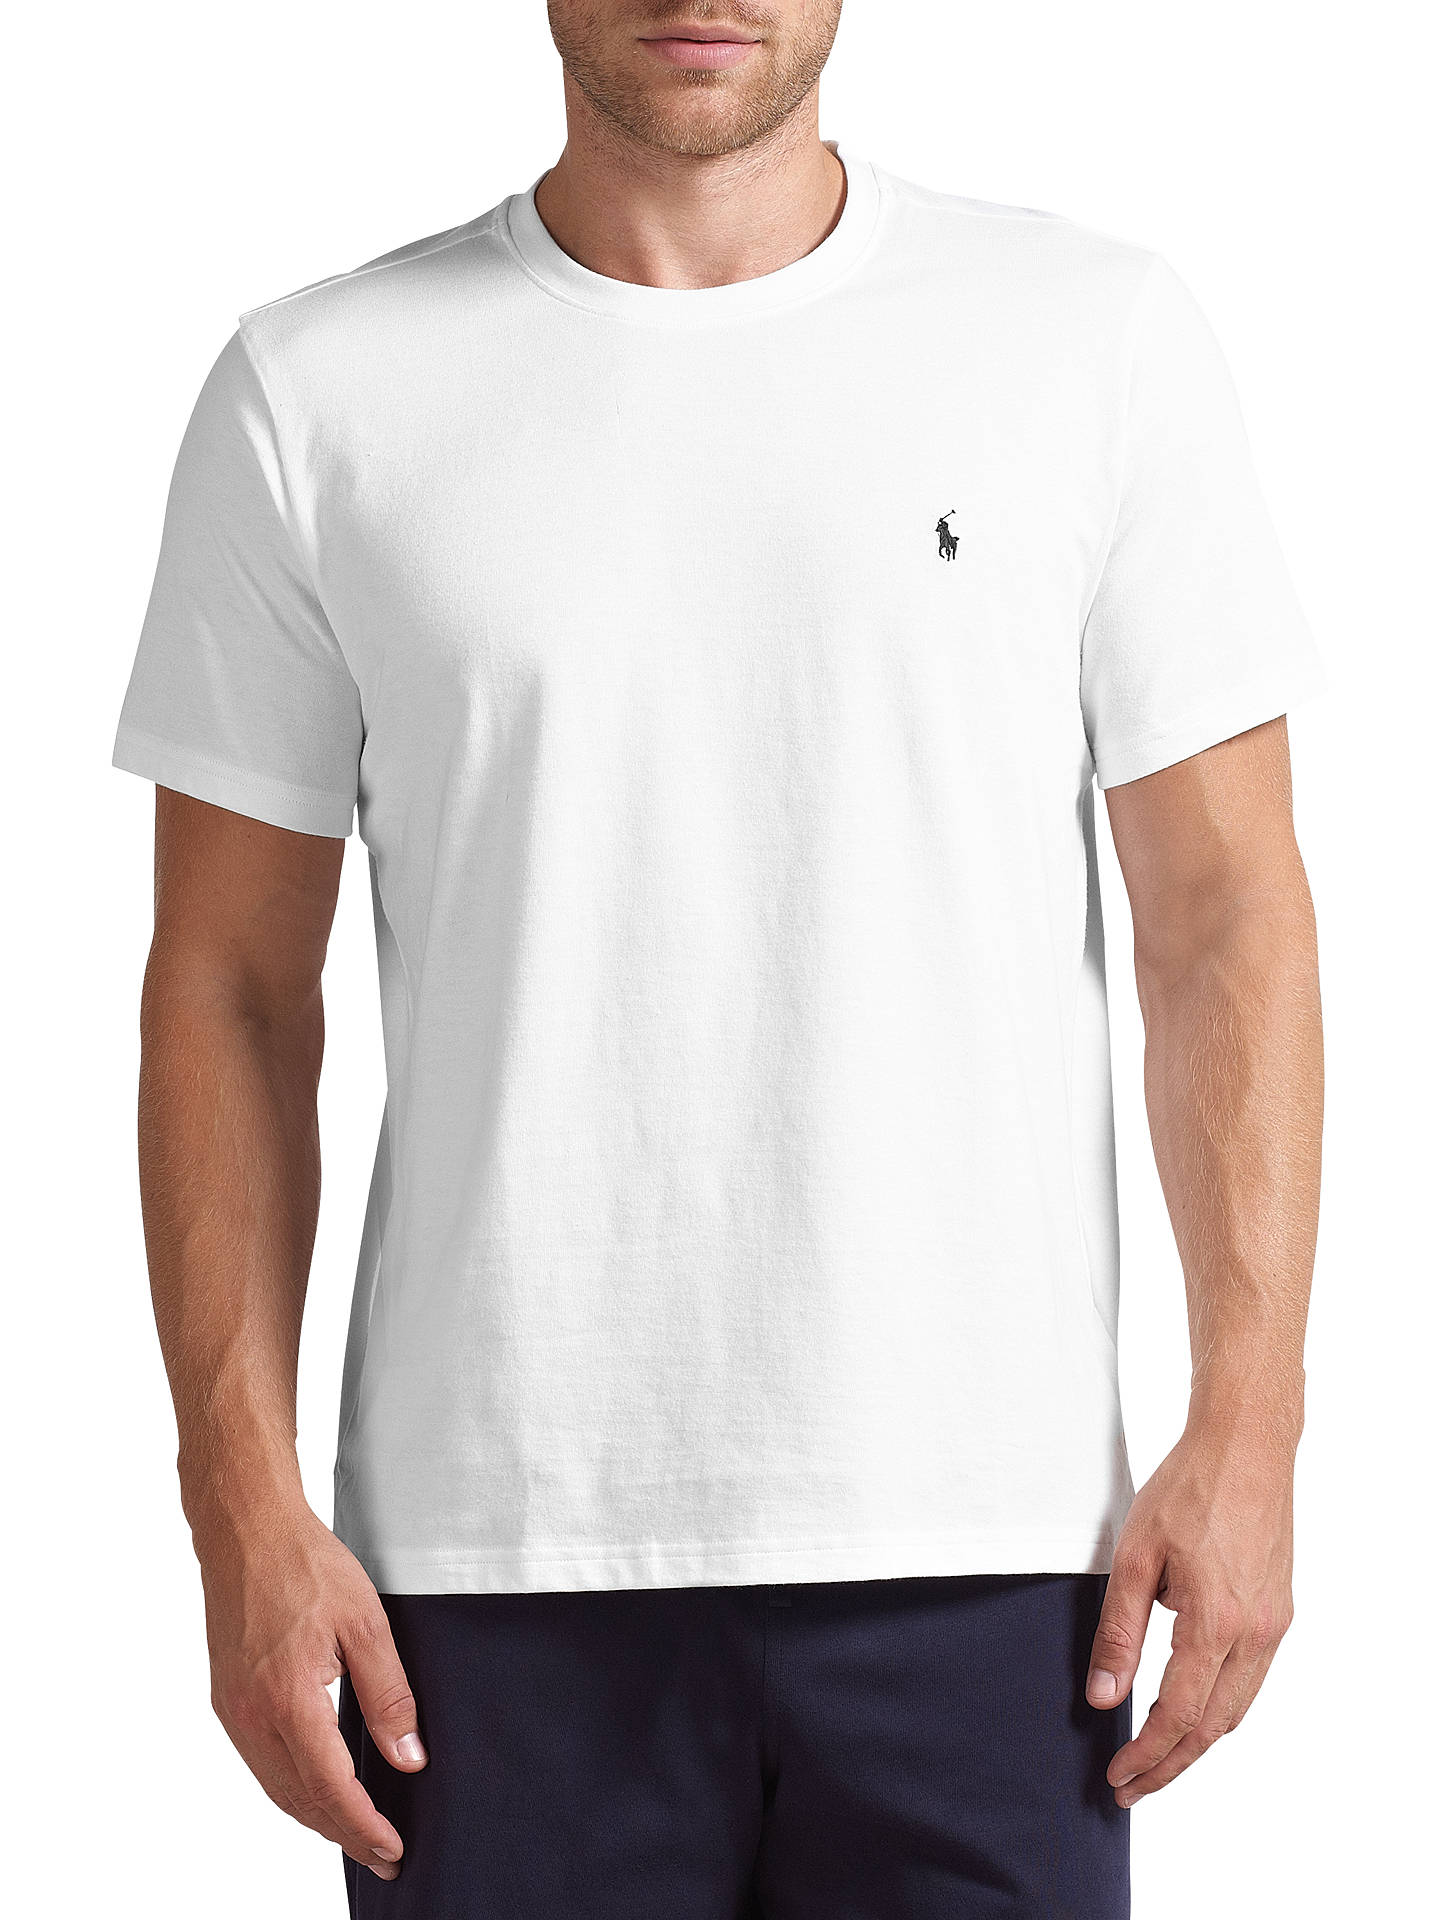 60424014a Buy Polo Ralph Lauren Crew Neck Lounge T-Shirt, White, M Online at ...